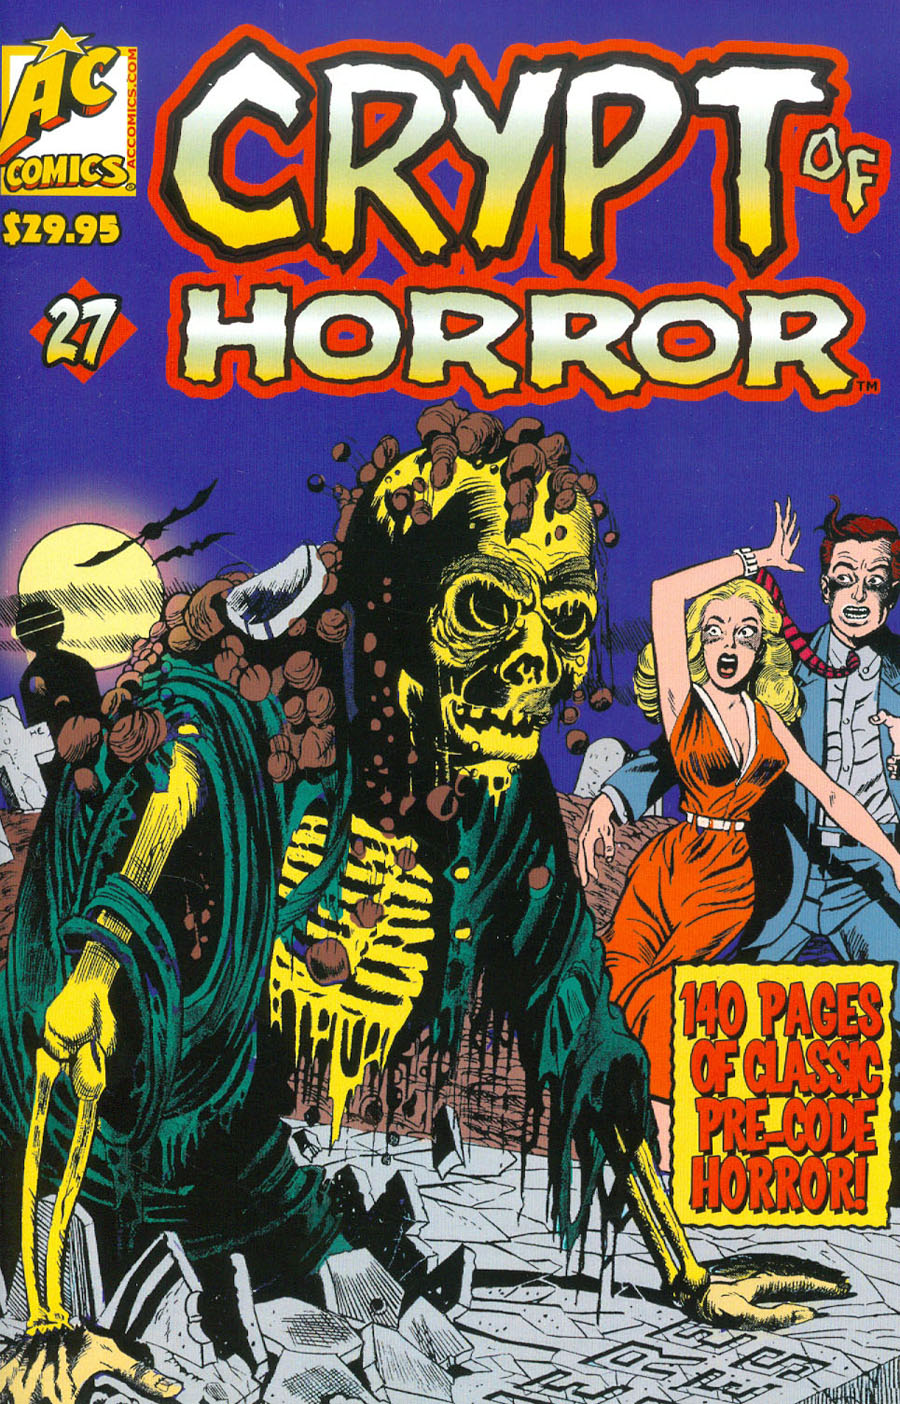 Crypt Of Horror #27